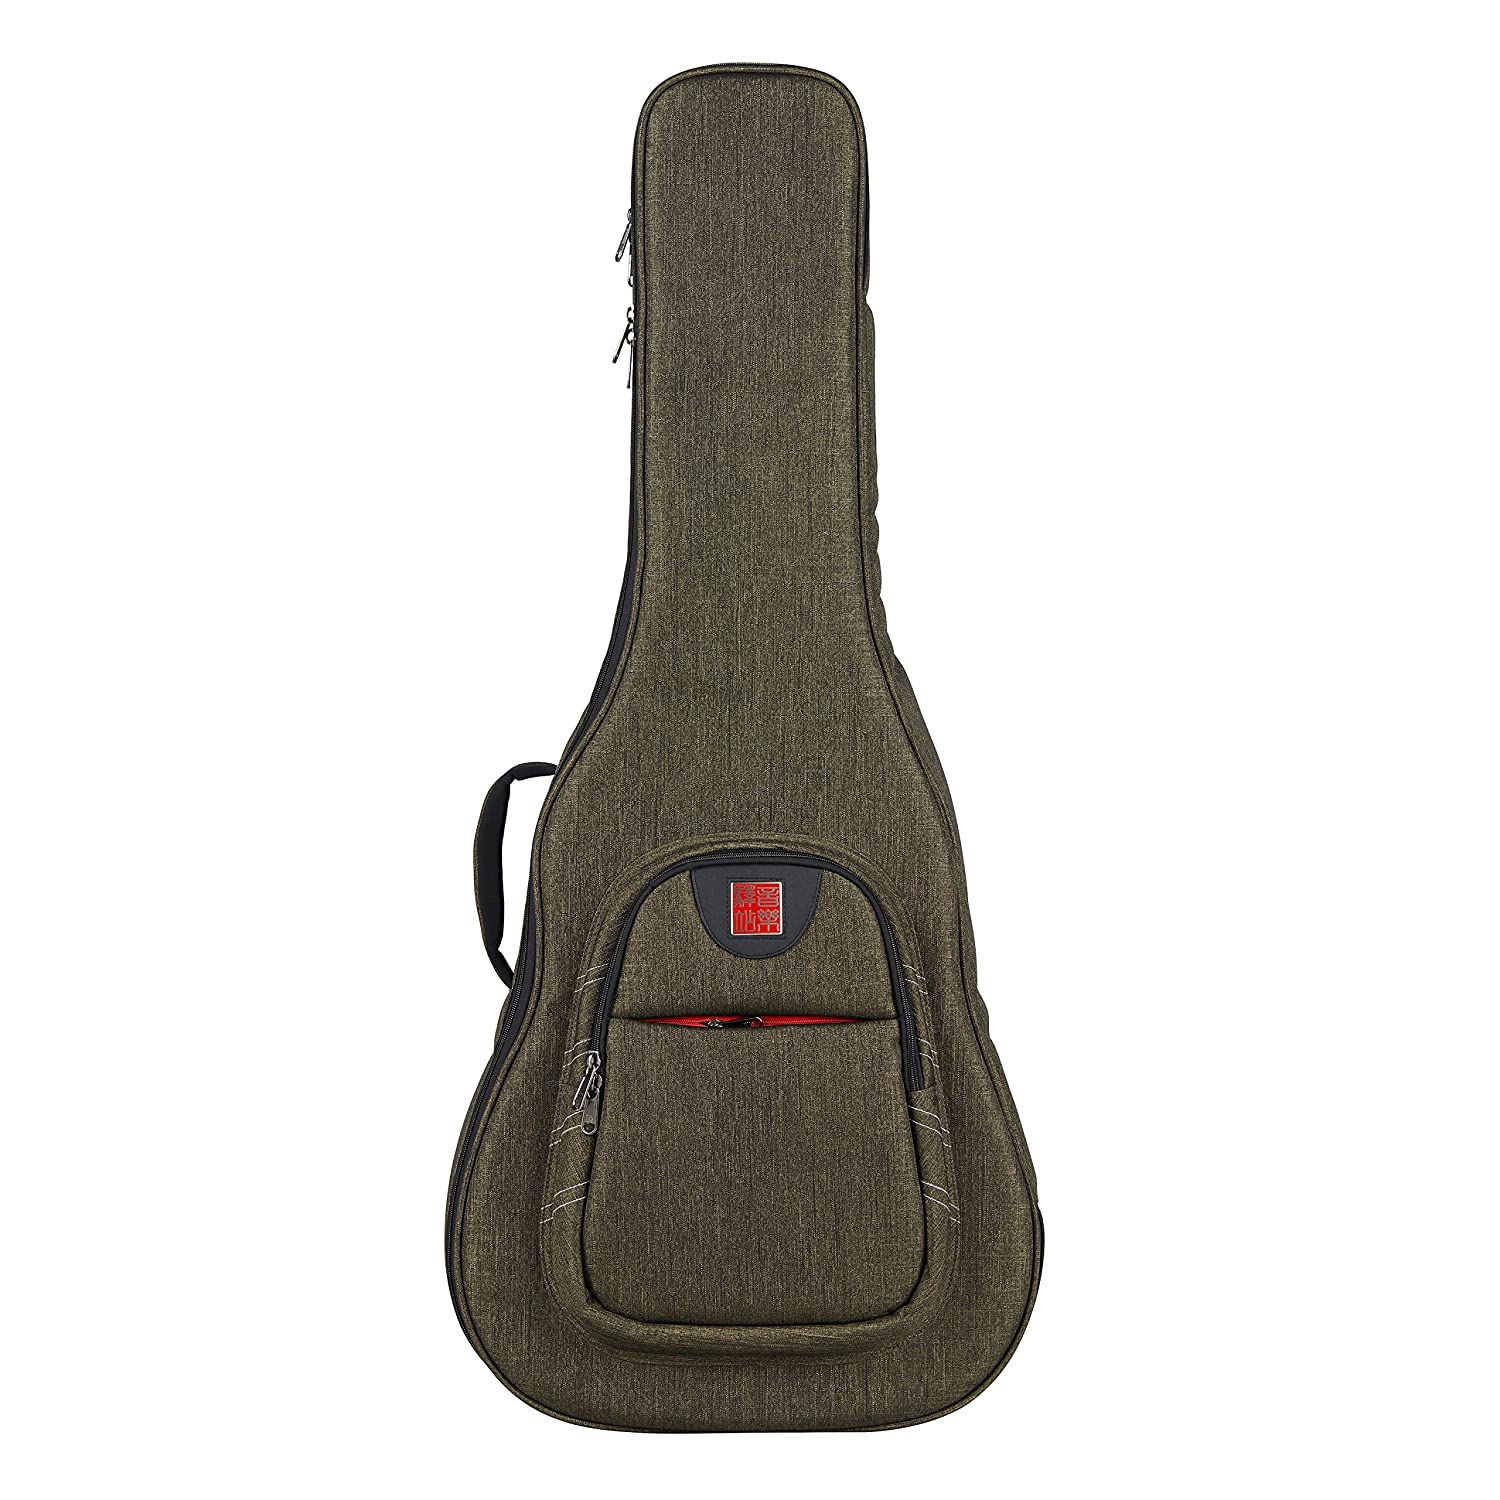 3718b80c1ee Music Area WIND20 Electric Guitar Gig Bag Waterproof with 30mm cushion  protection - Green Ruby Industrial